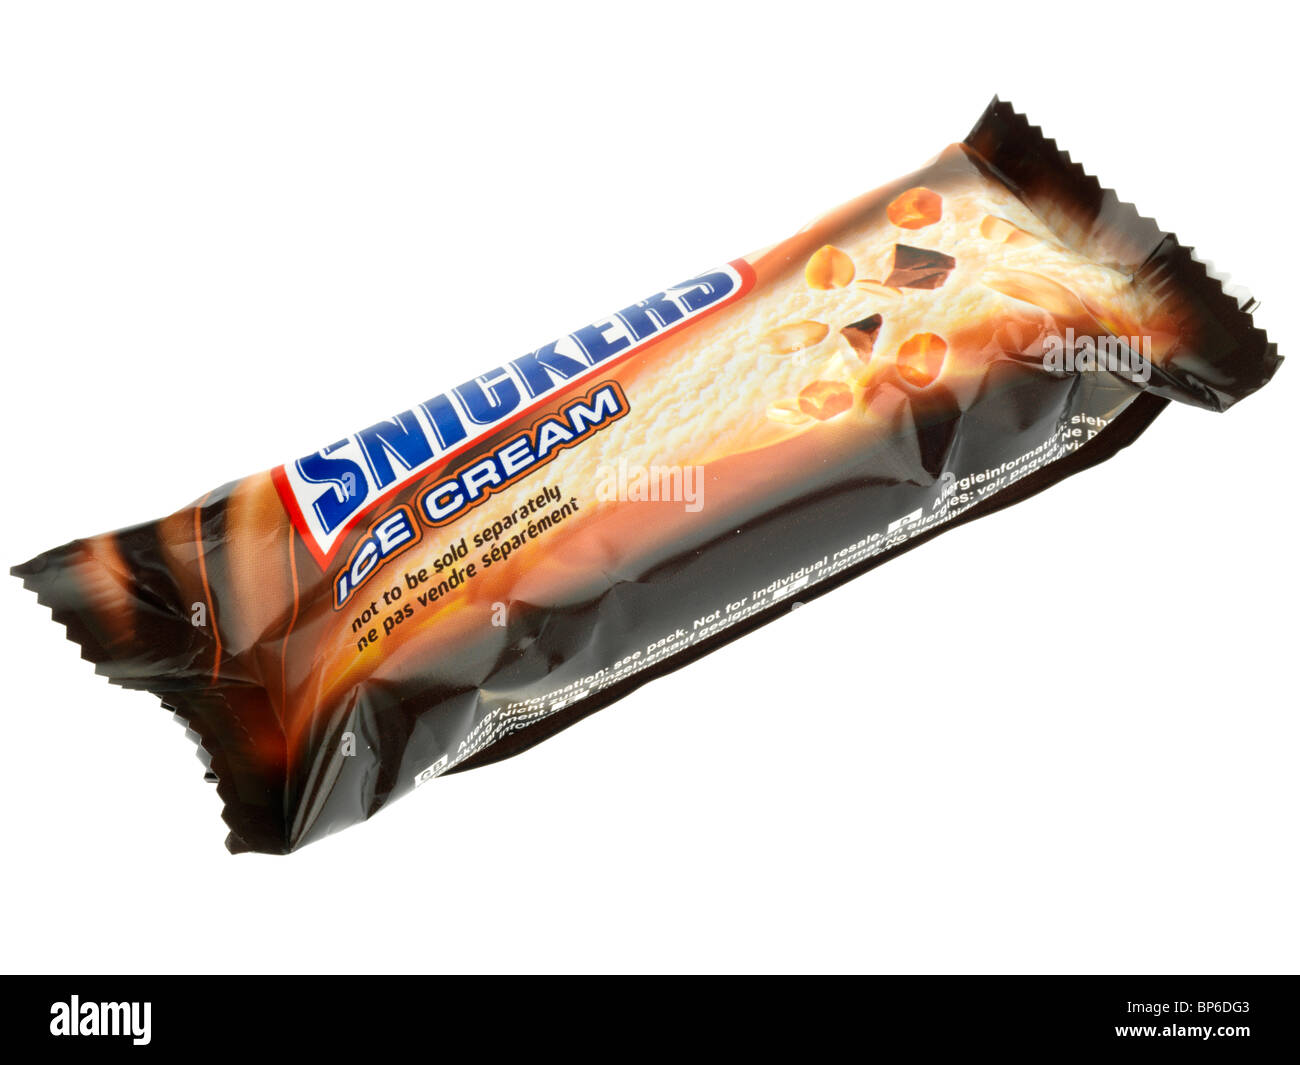 Snickers Ice Cream - Stock Image